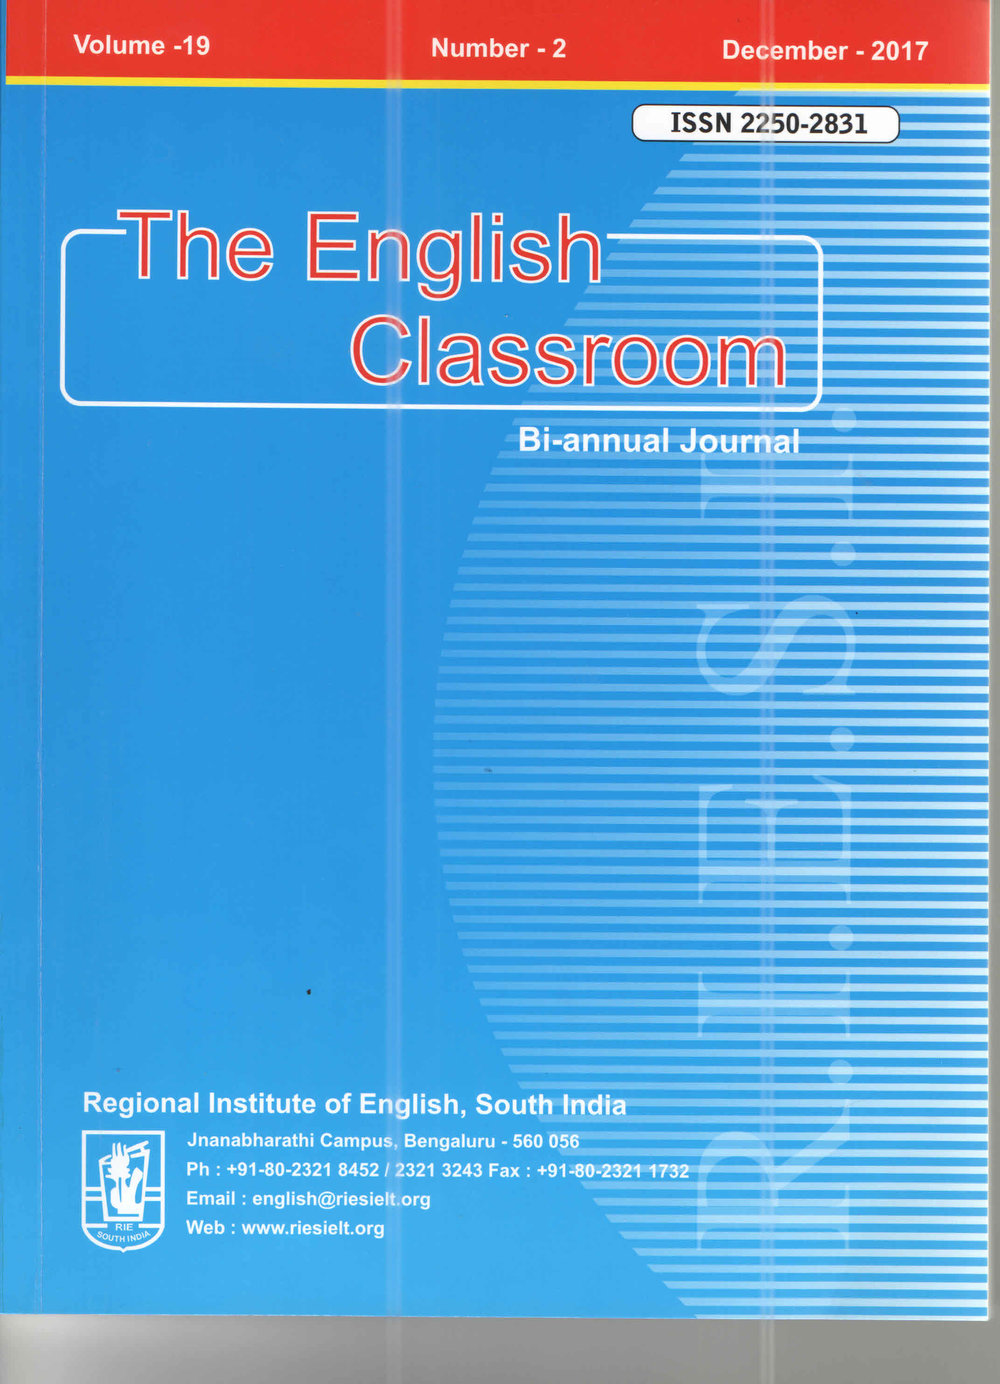 The English Classroom-Cover Page.jpg